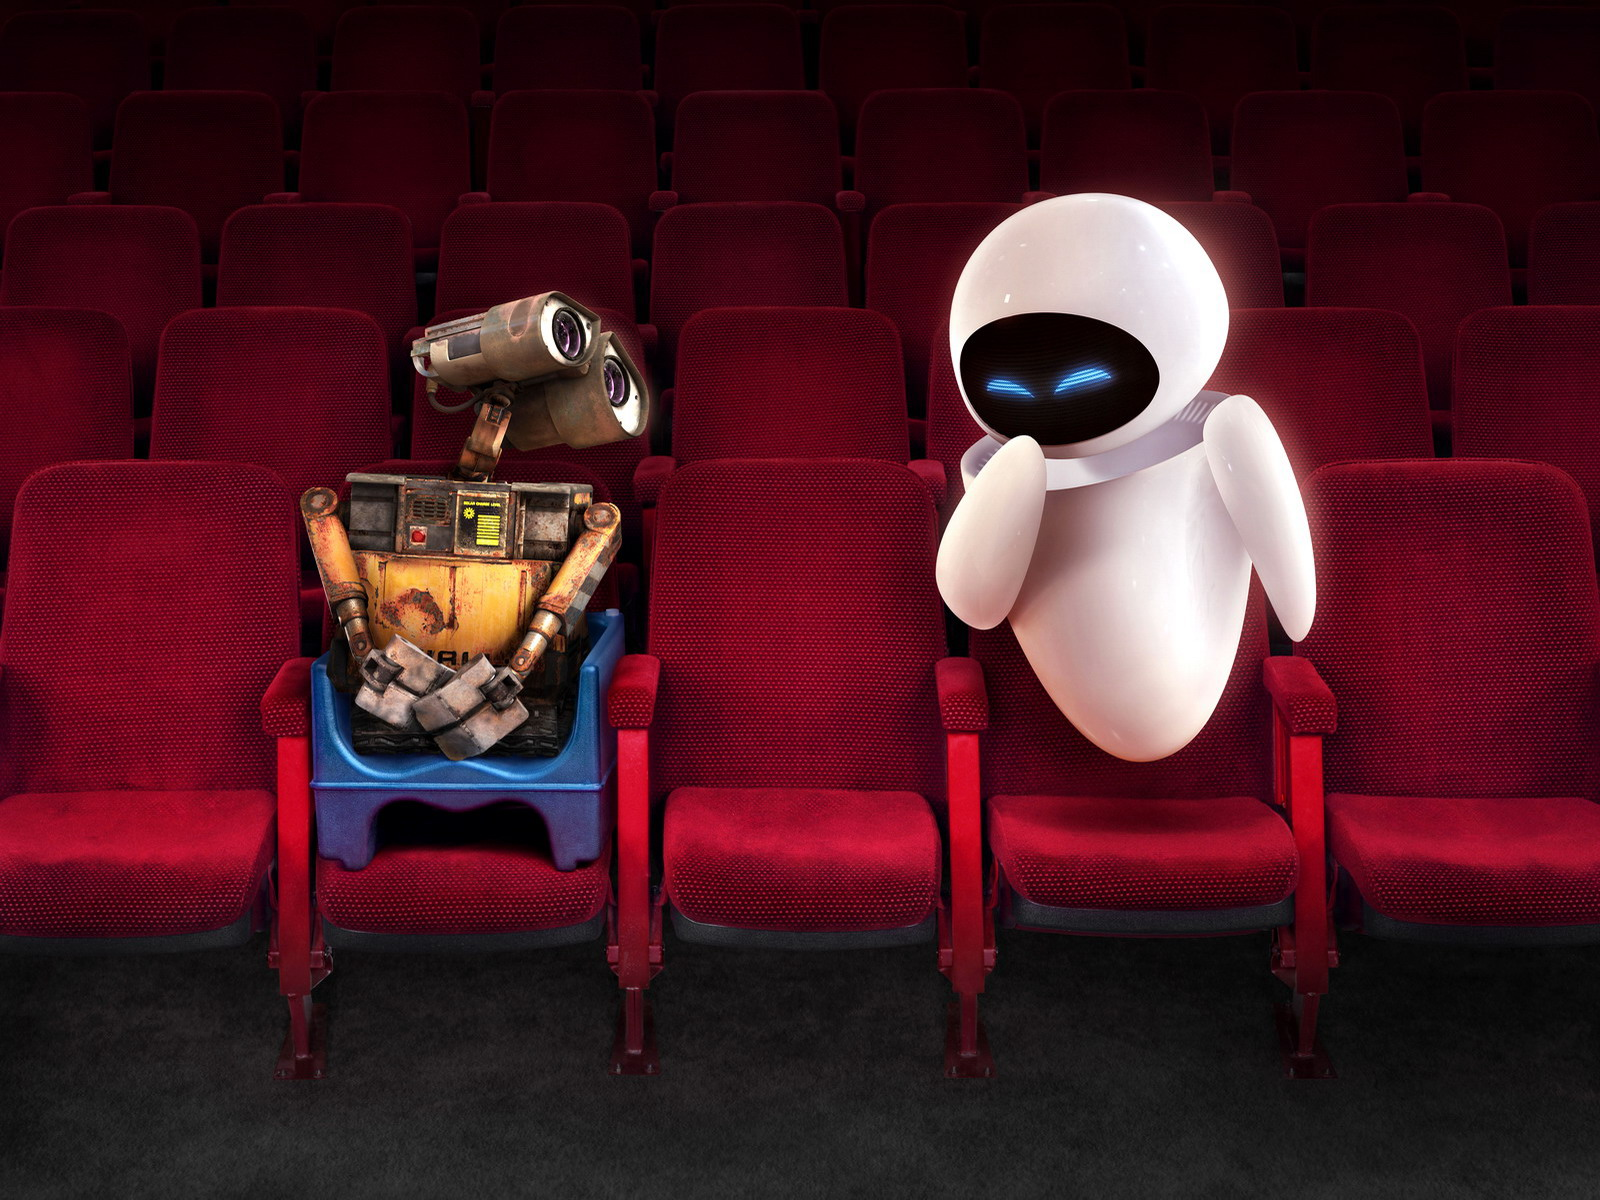 Wallpaper Collections: Wall-e HD Wallpapers